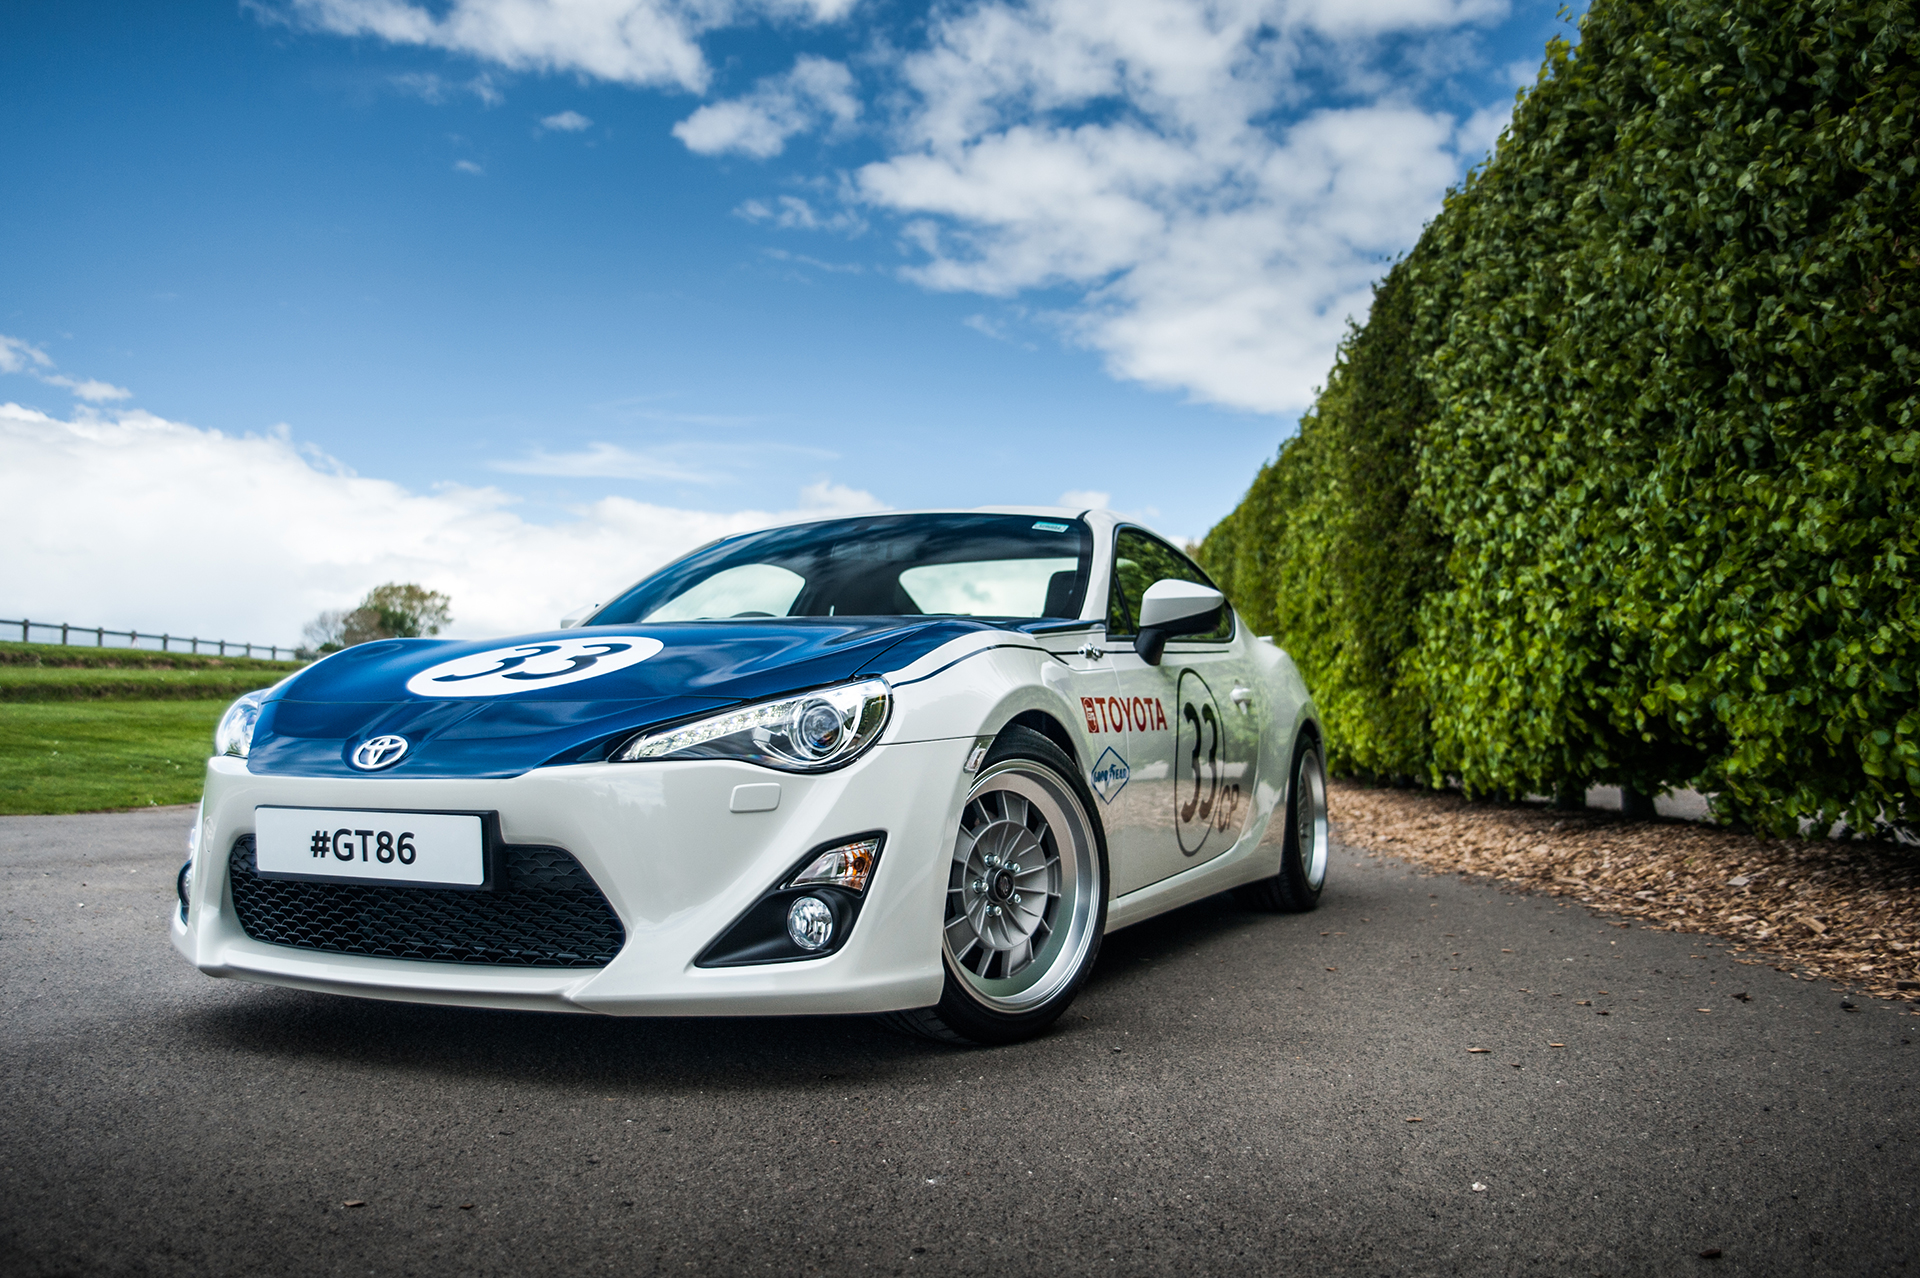 Toyota GT86 - classic-livery - Shelby 2000GT